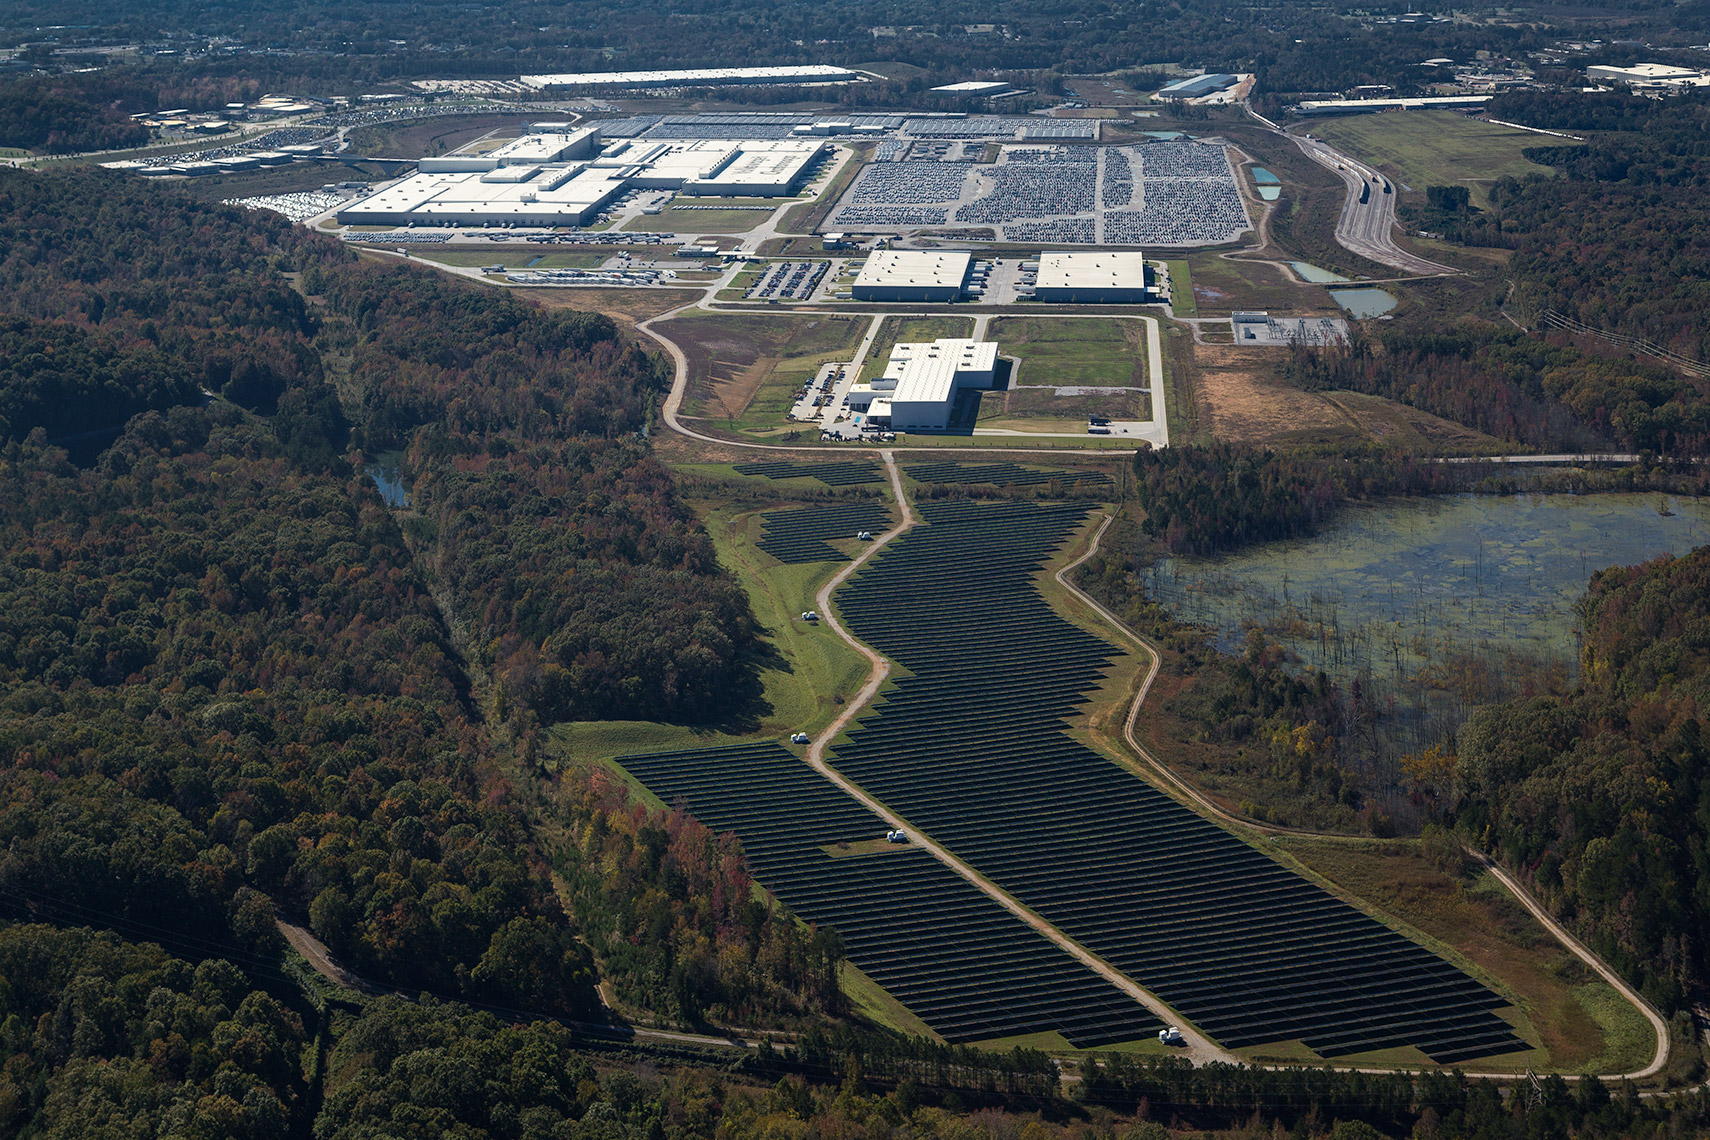 solar panel farm aerial of Volkswagen Assembly